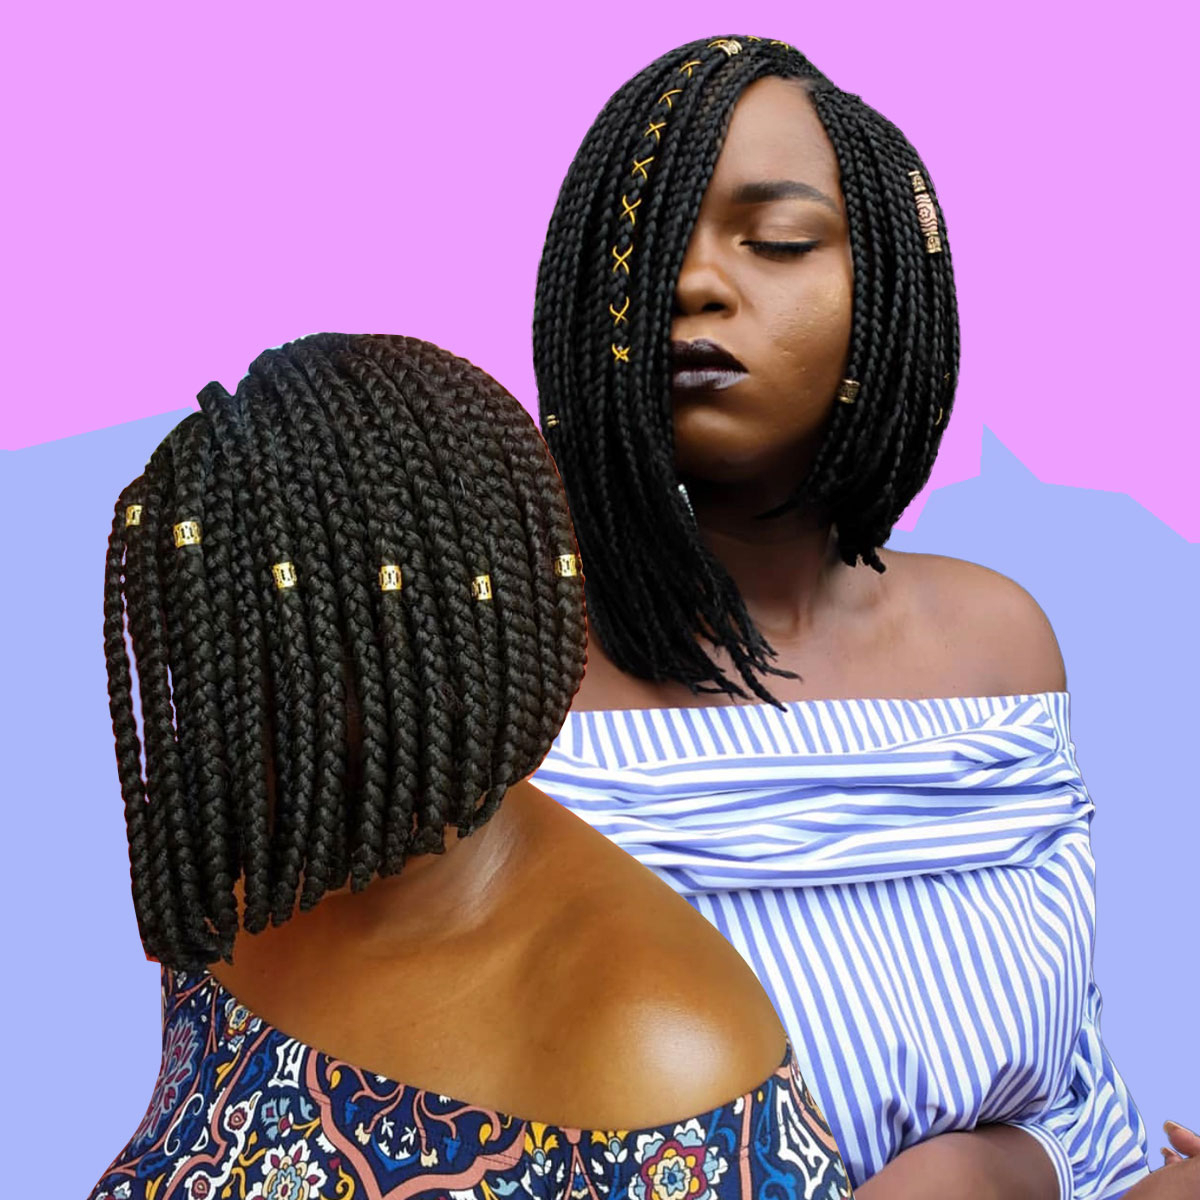 Popular Metallic Side Cornrows Braided Hairstyles Regarding 17 Beautiful Braided Bobs From Instagram You Need To Give A Try (View 13 of 20)